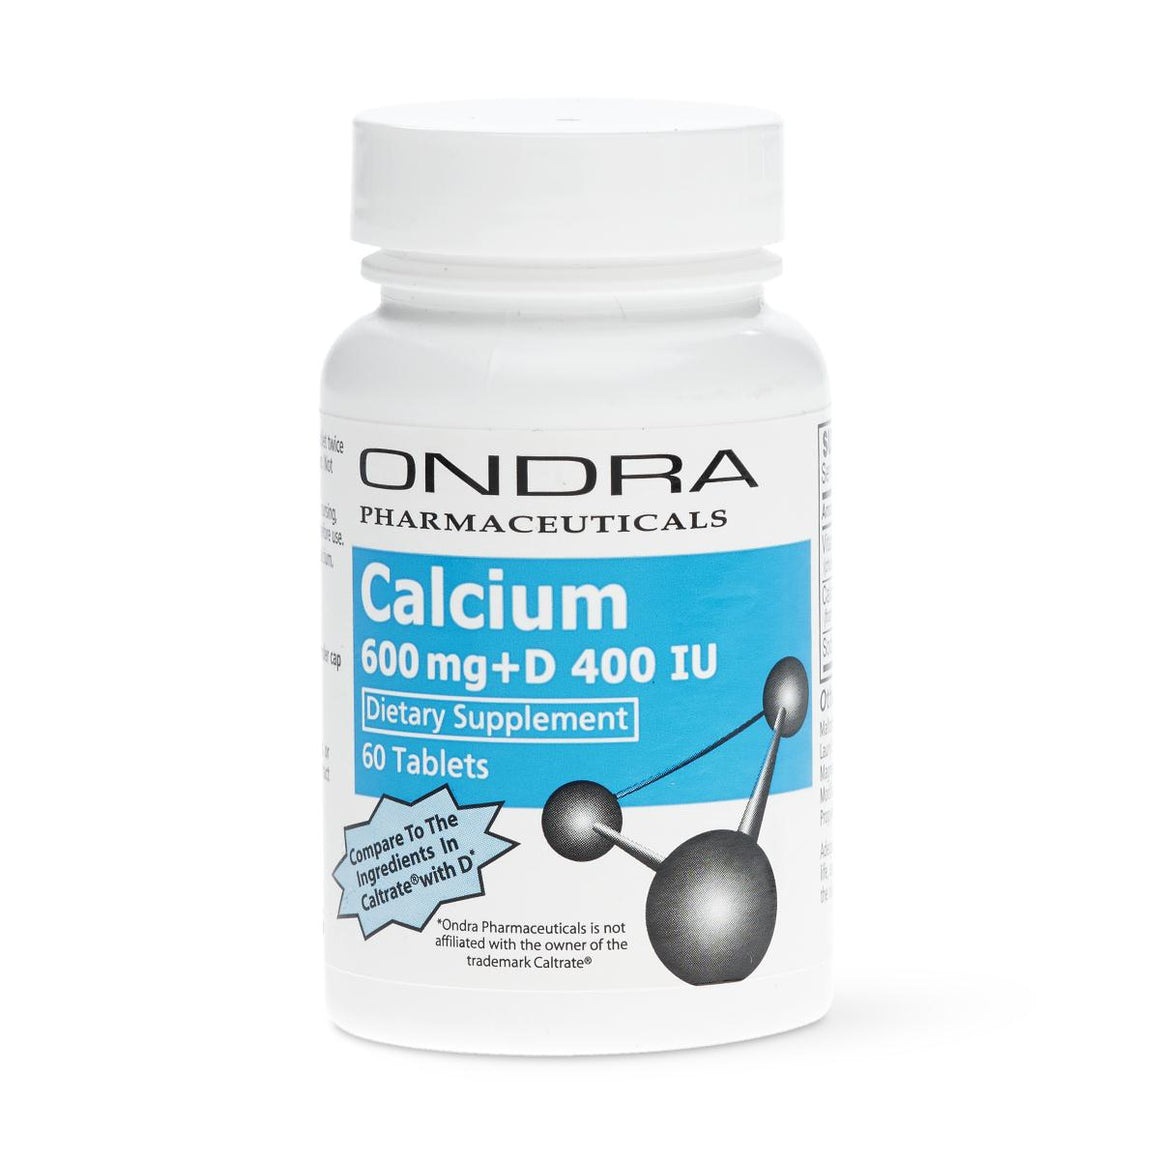 Calcium with Vitamin D Tablets, Bottle